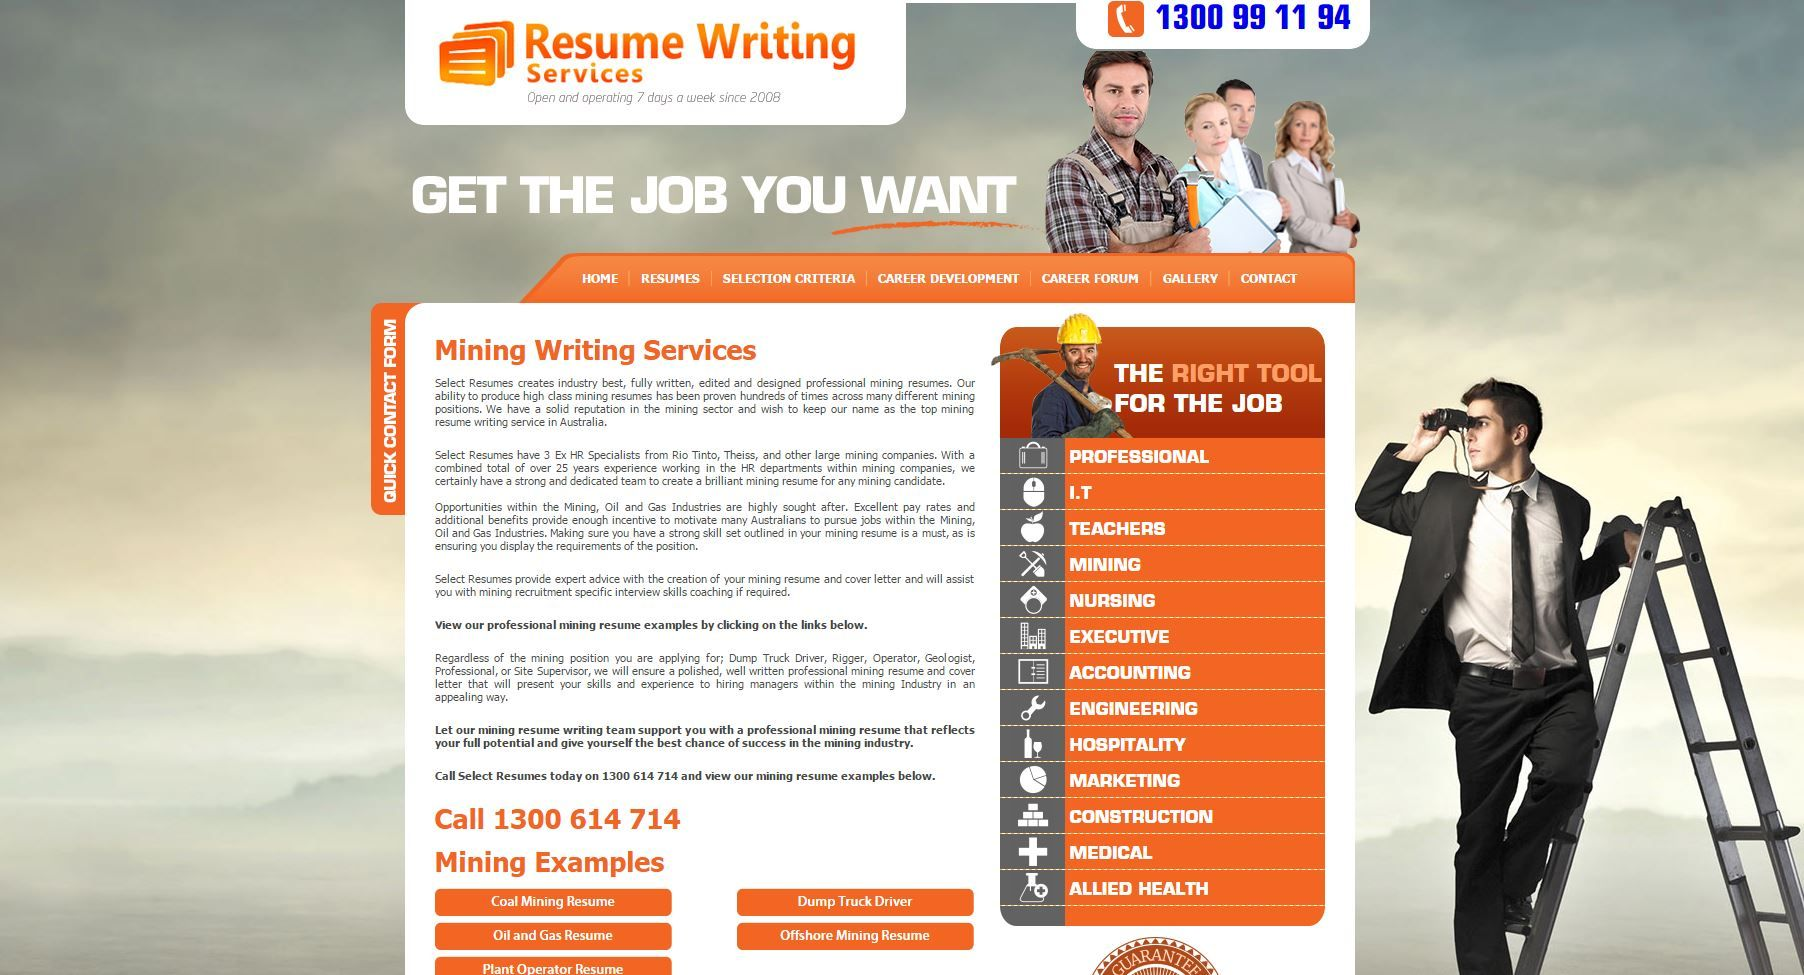 We produce 100's of mining resumes every month. From Dump